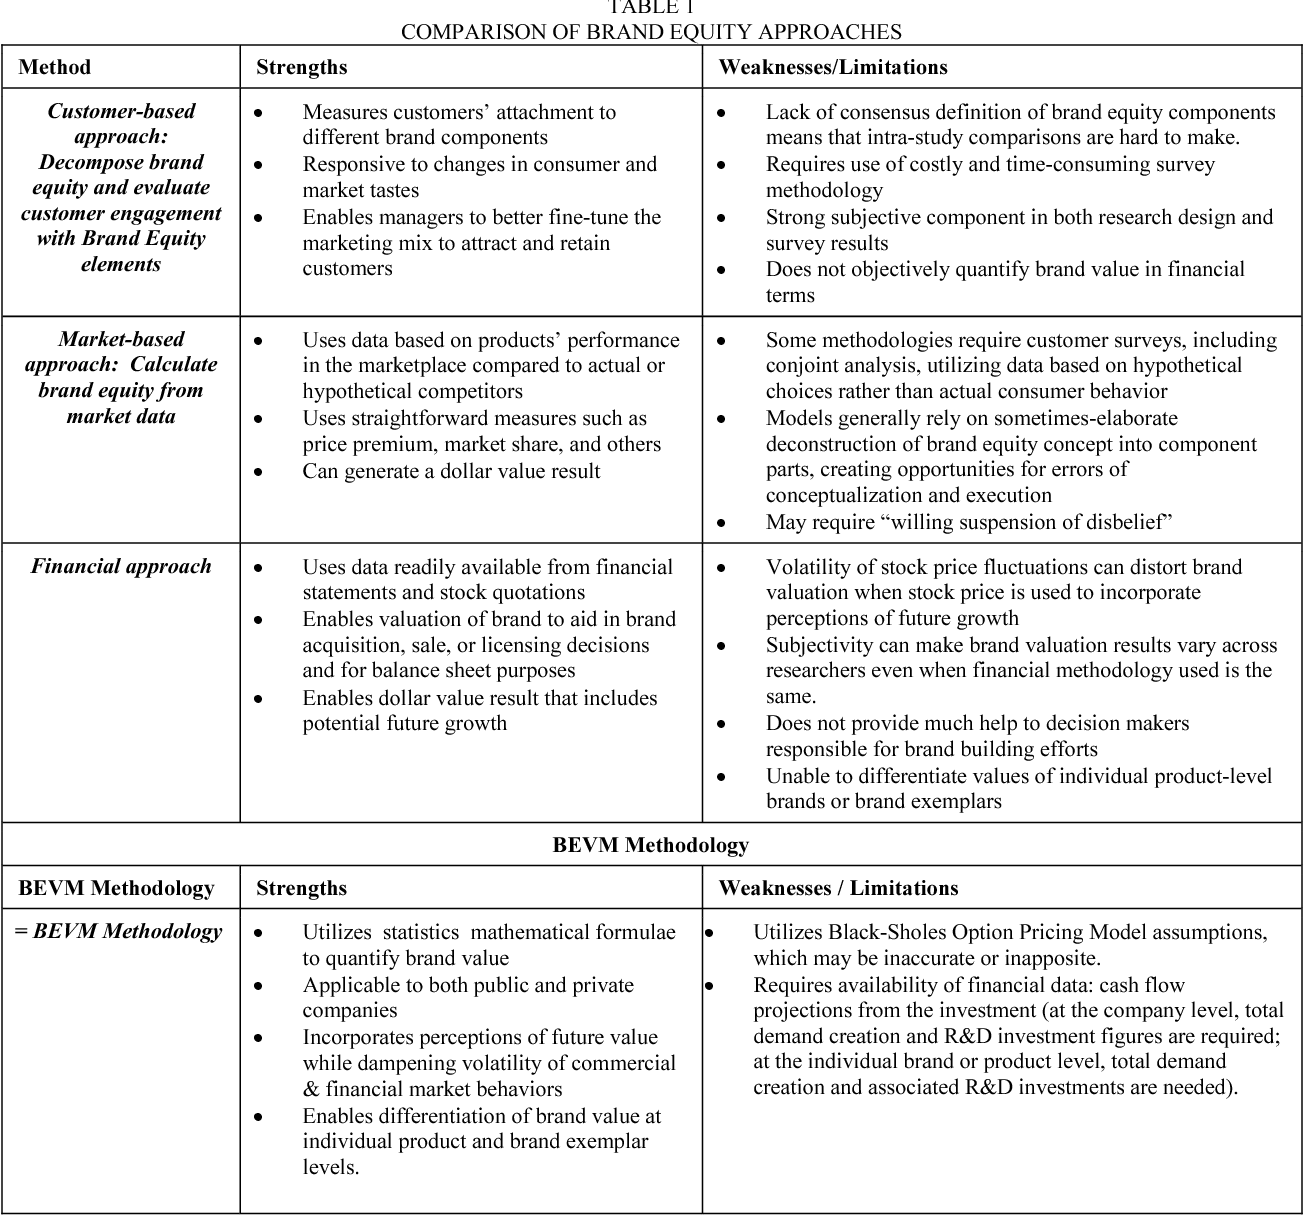 TABLE 1 COMPARISON OF BRAND EQUITY APPROACHES